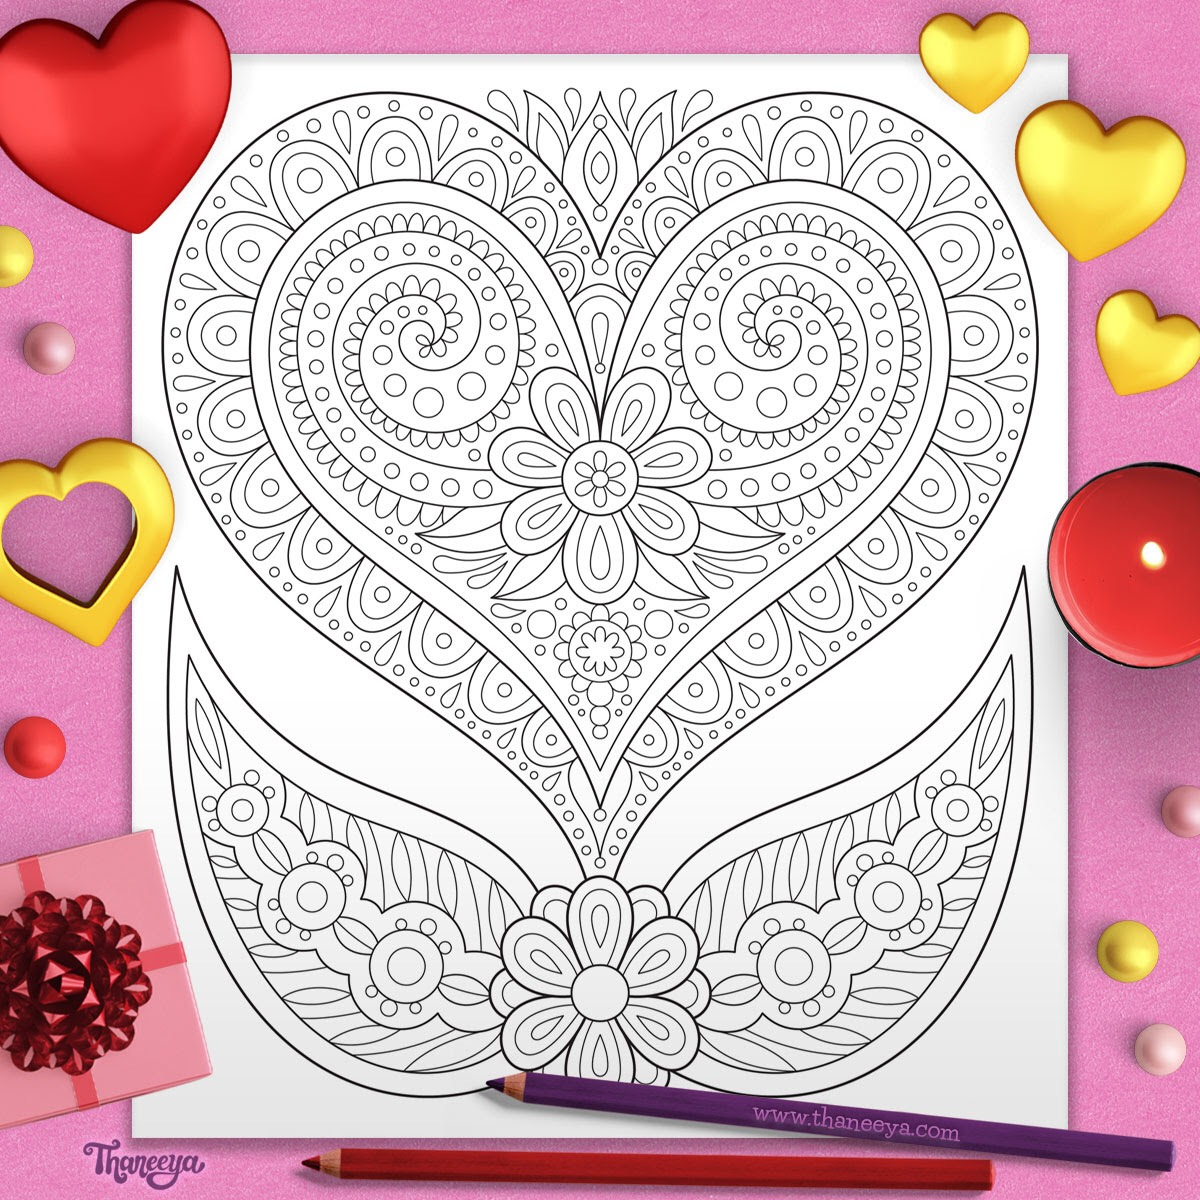 Free Heart Coloring Page by Thaneeya